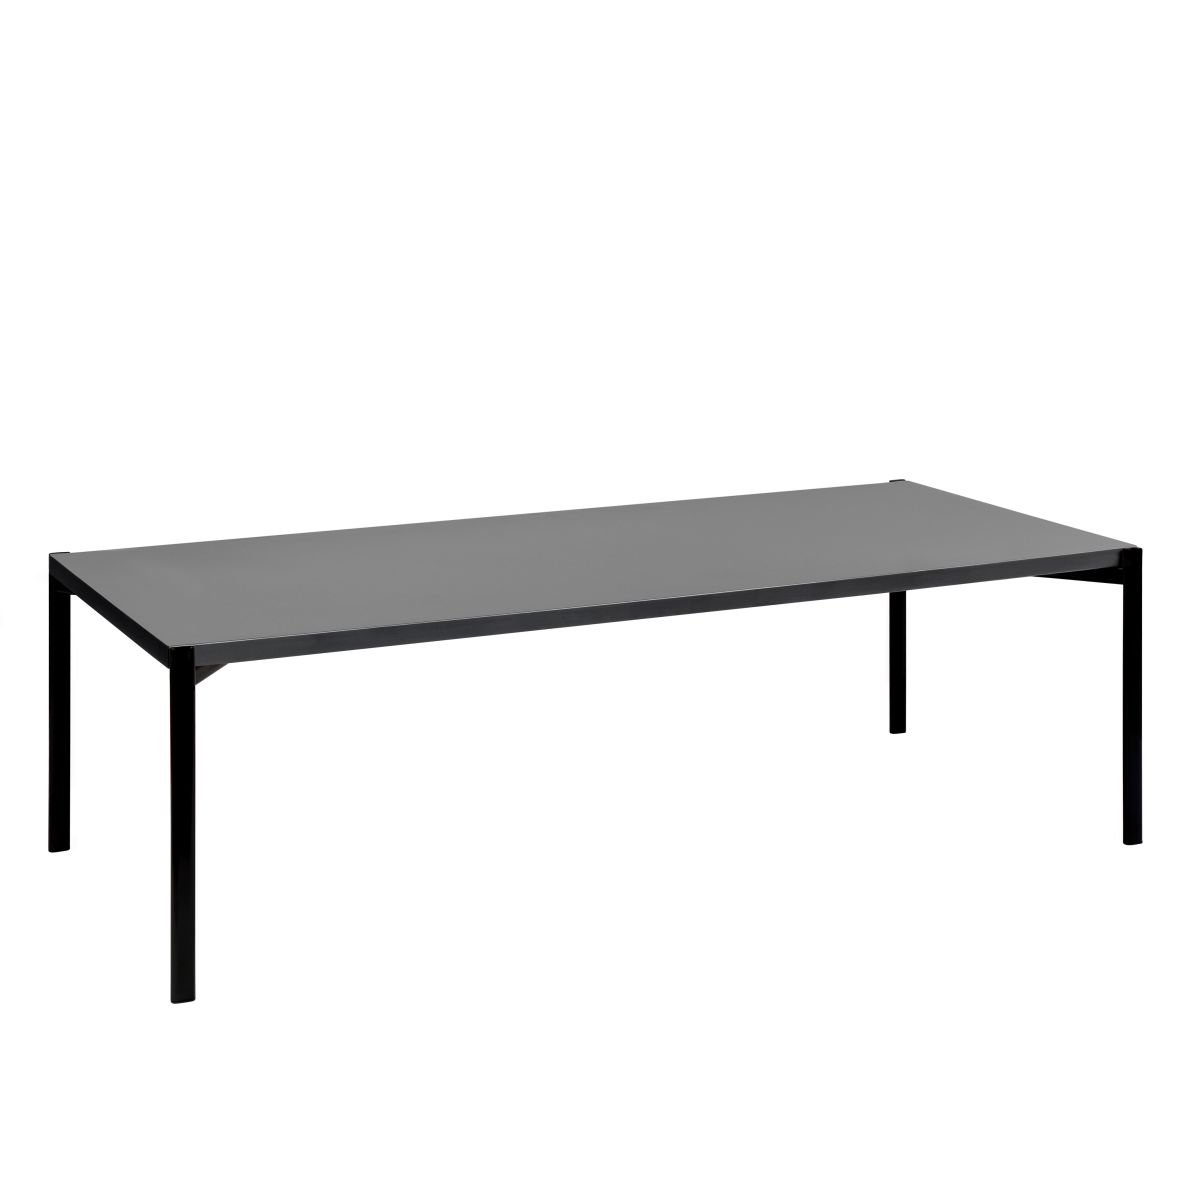 Kiki_Low_Table_black-linoleum-140-2650994